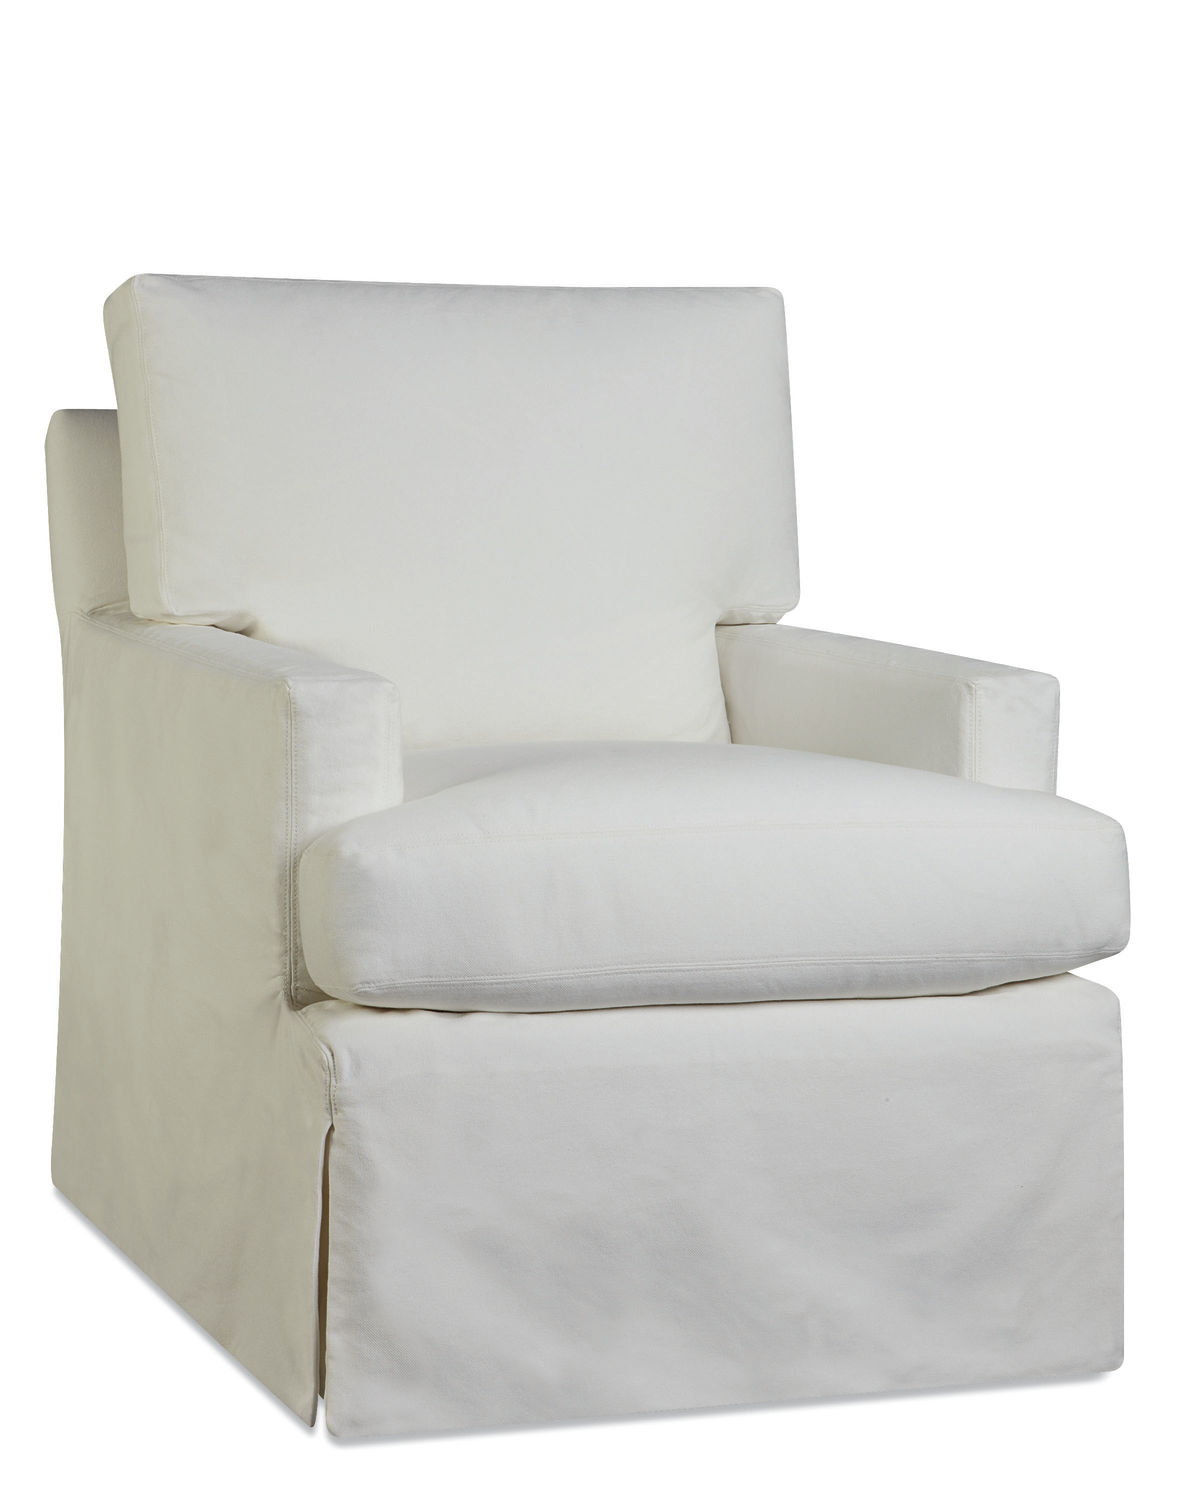 Upholstered Slipcover Swivel Chair